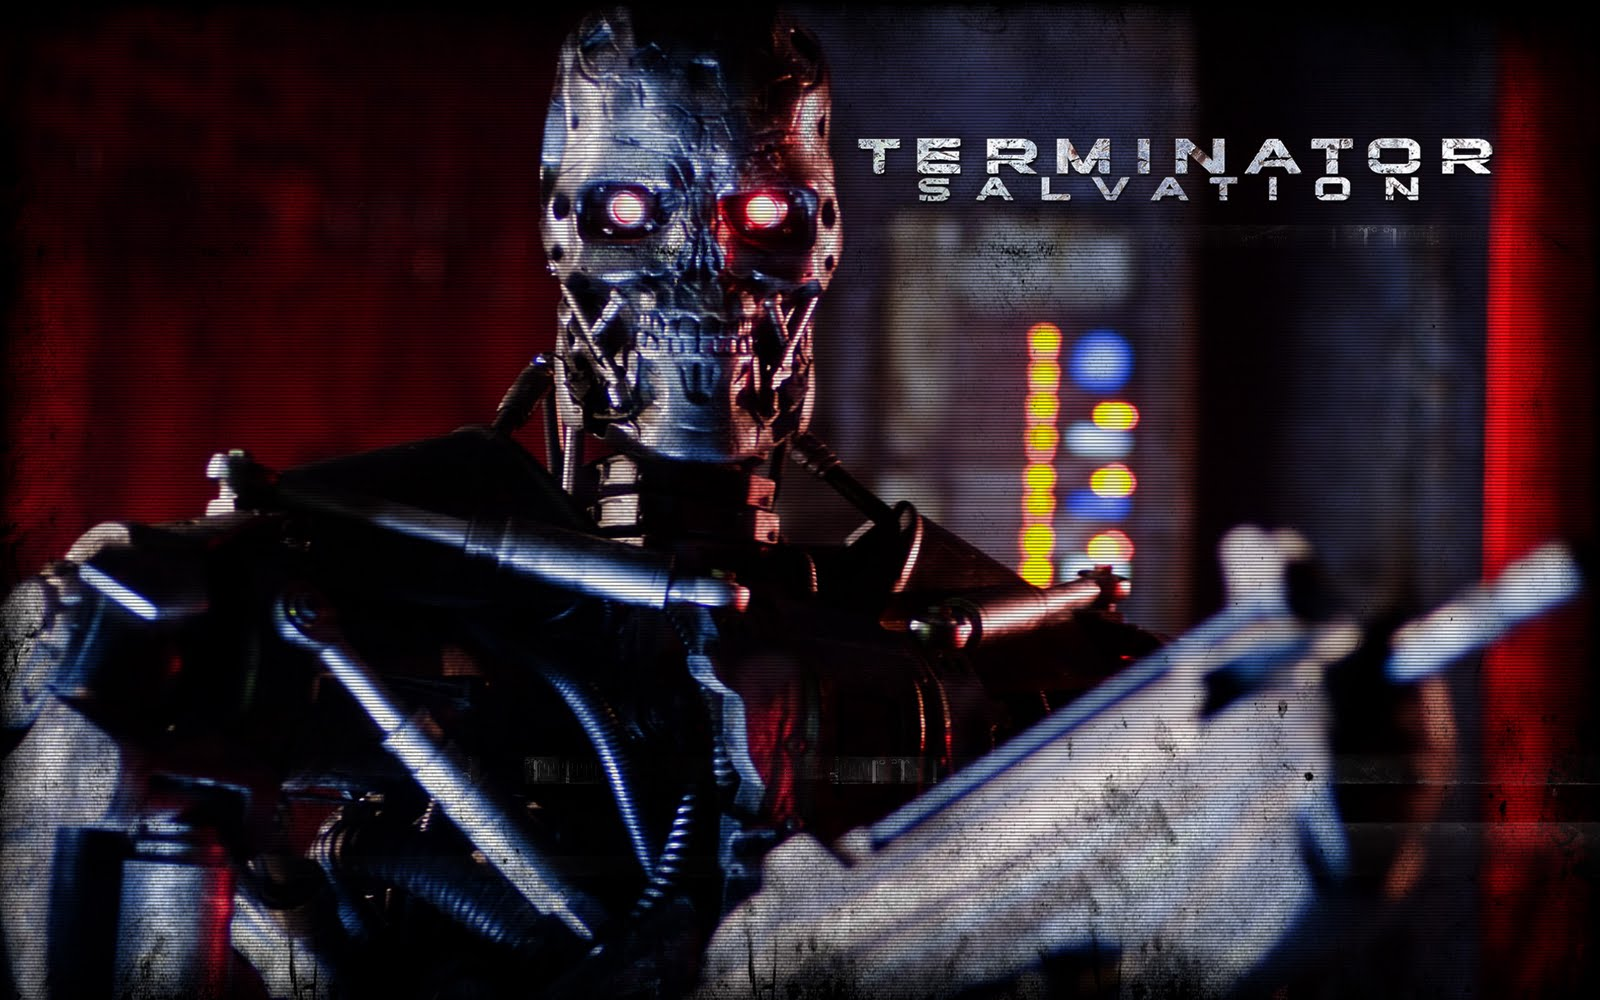 Terminator 4 wallpaper | High Resolution Wallpapers and ...